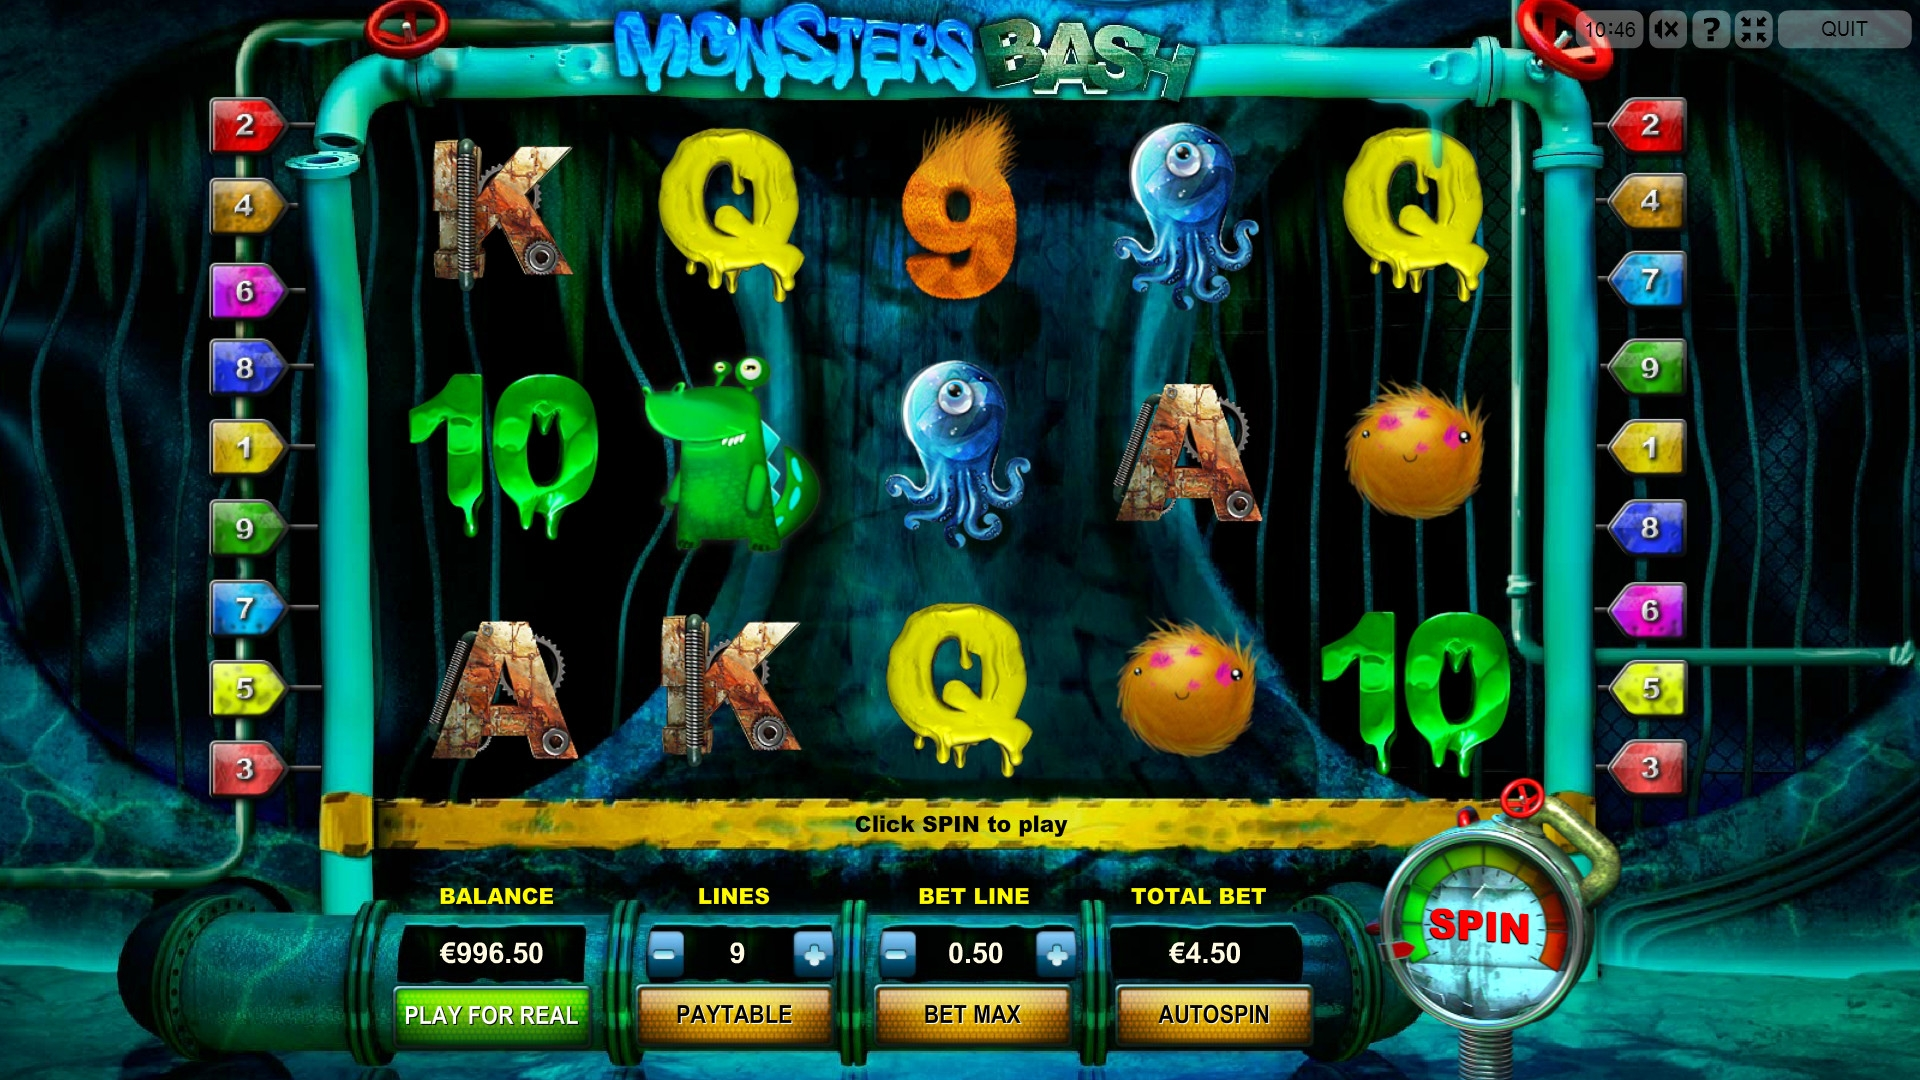 Monsters Bash Slot - Free to Play Online Casino Game